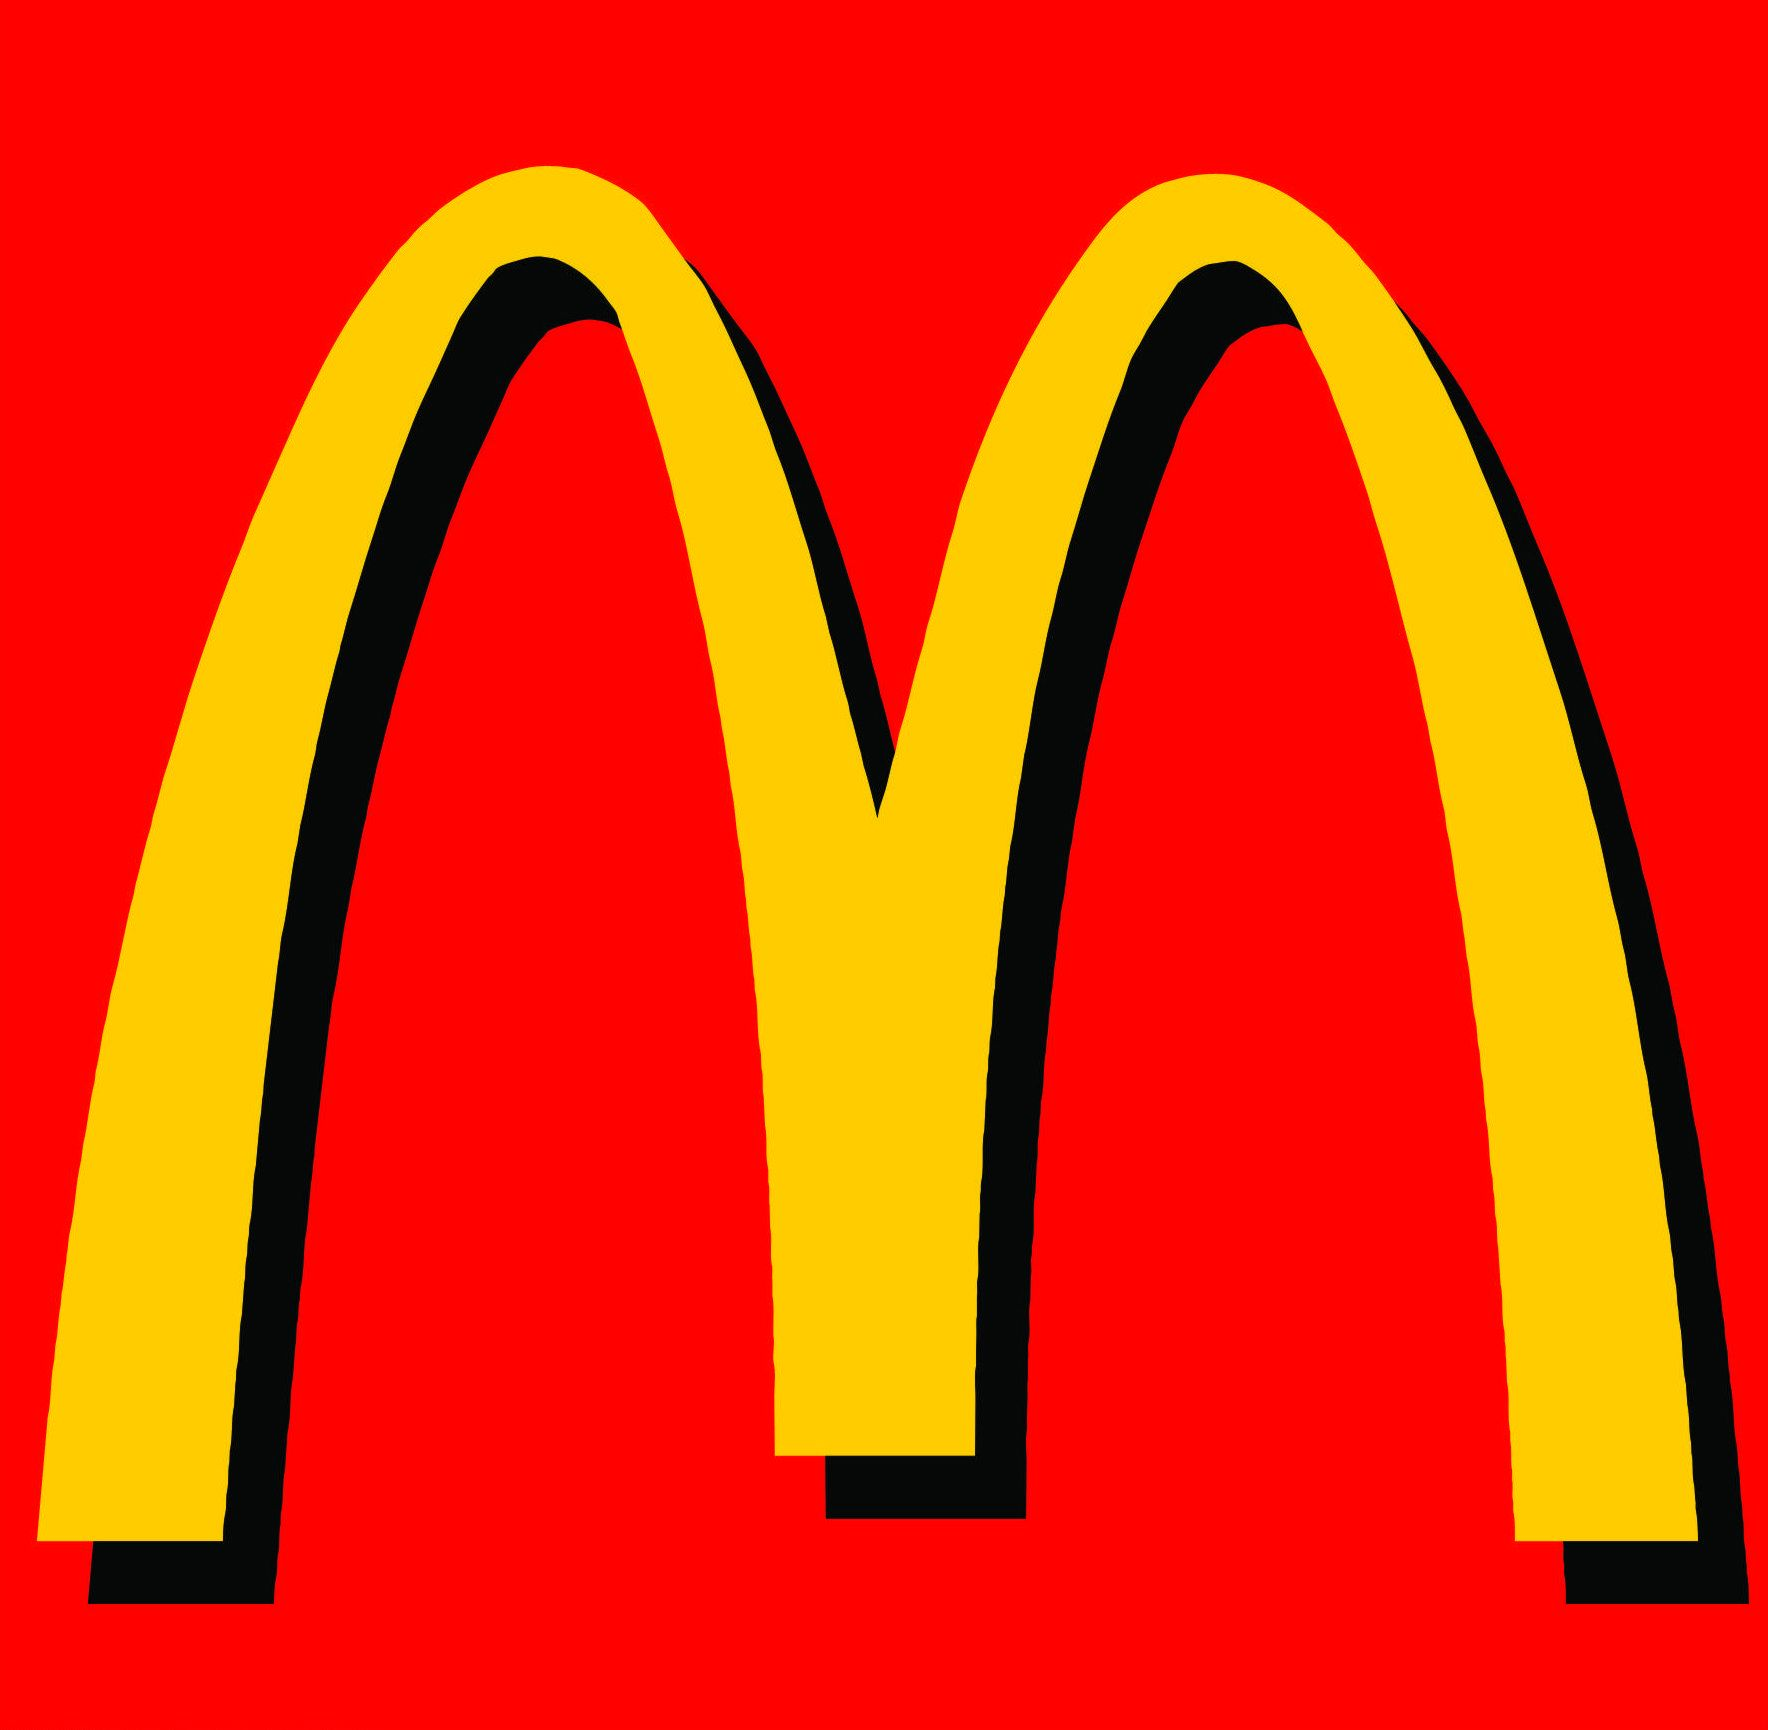 Mcdonalds logos HD Wallpaper - | Images And Wallpapers ...